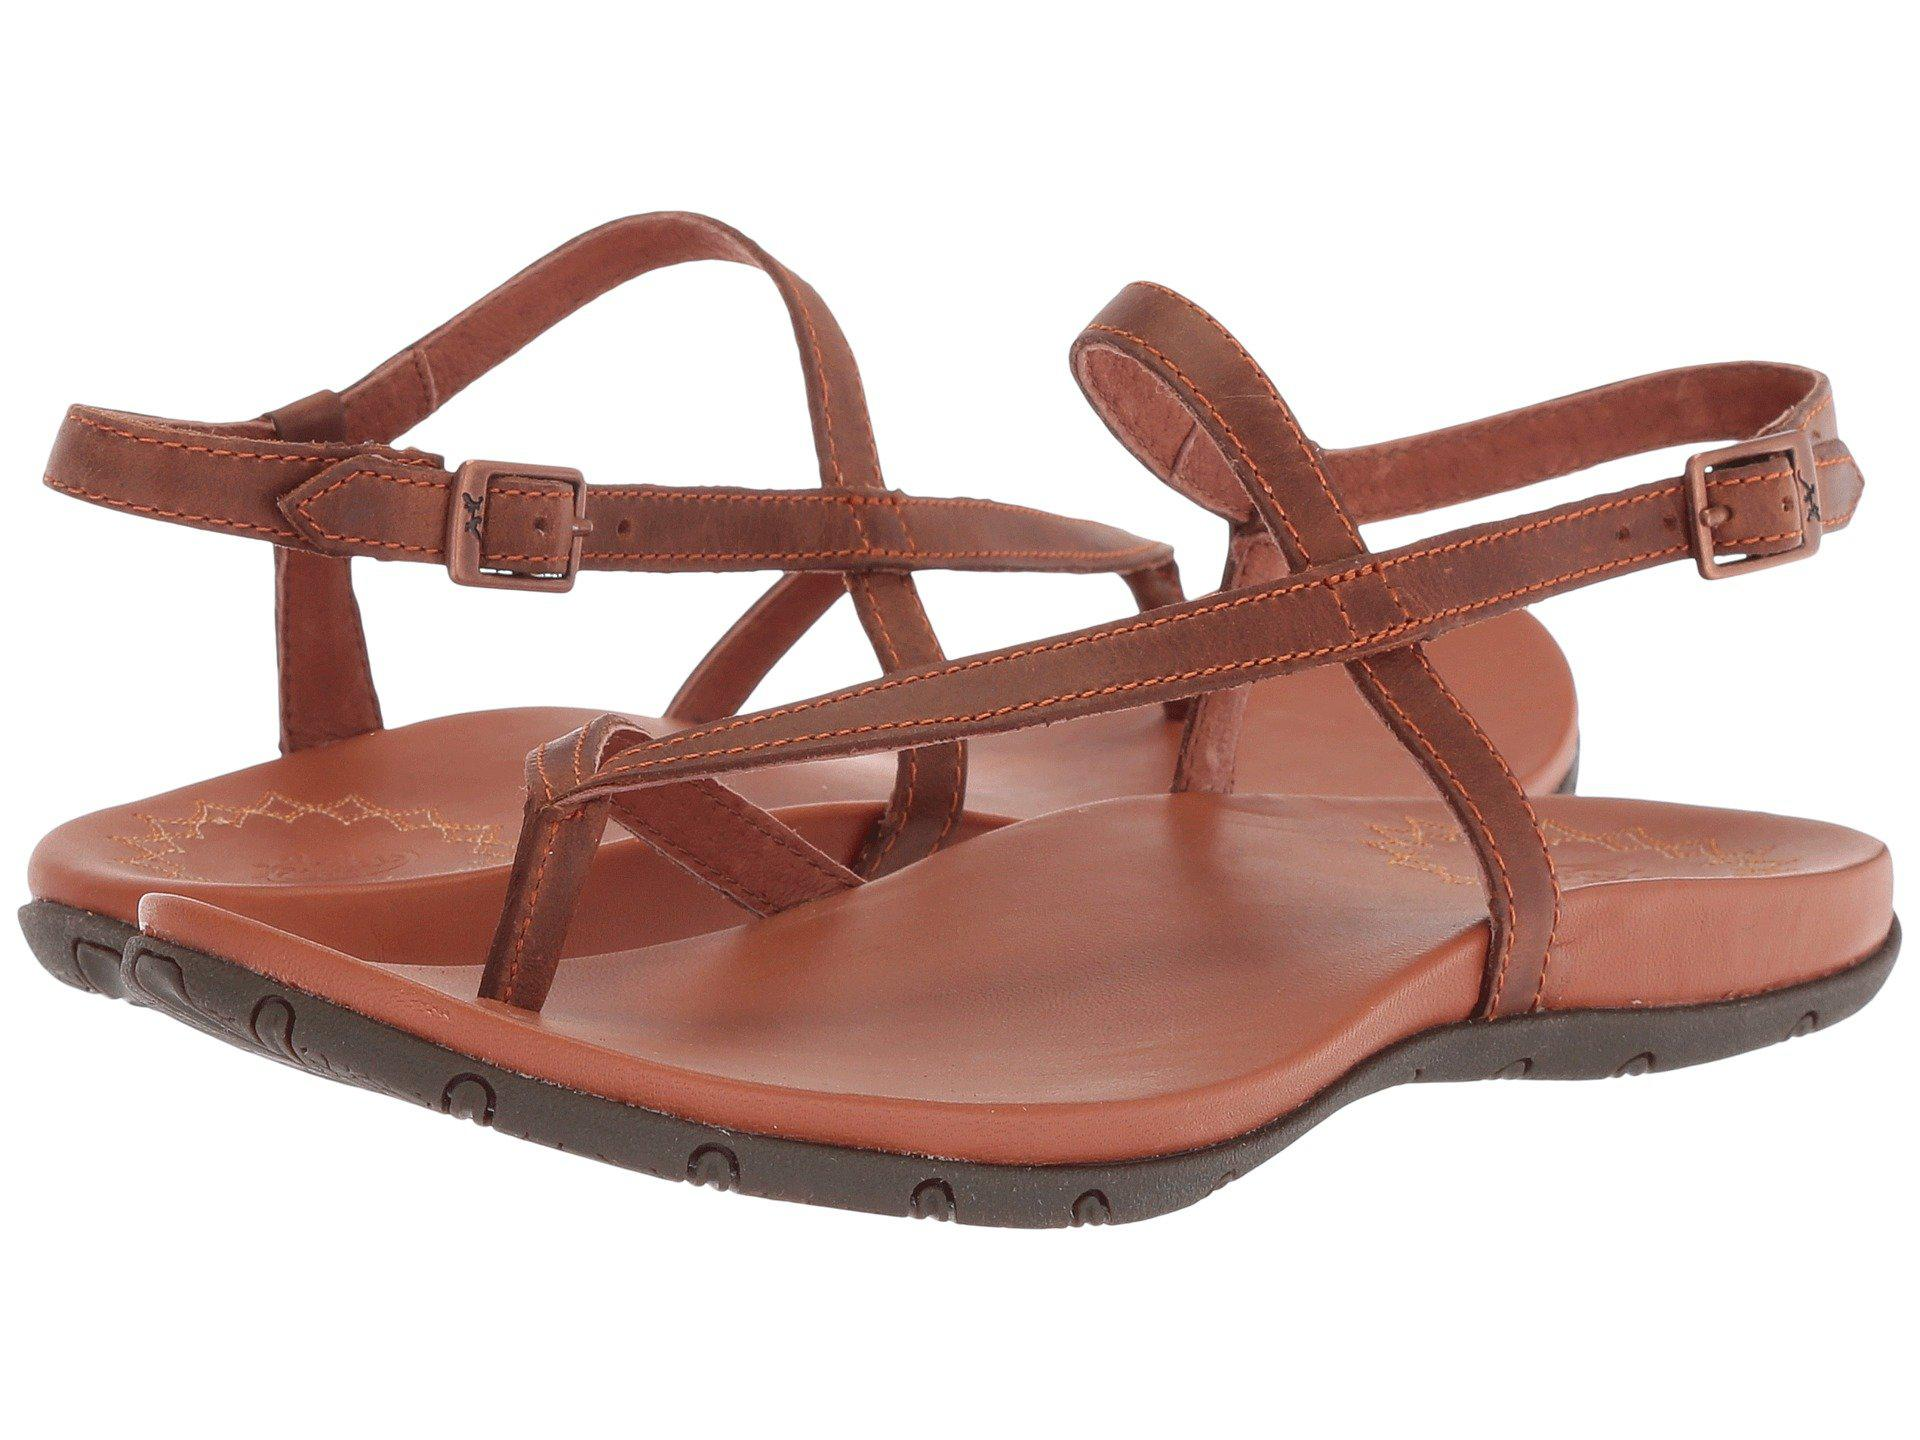 80e3a5dbceb6 Lyst - Chaco Maya Ii (rust) Women s Sandals in Brown - Save ...